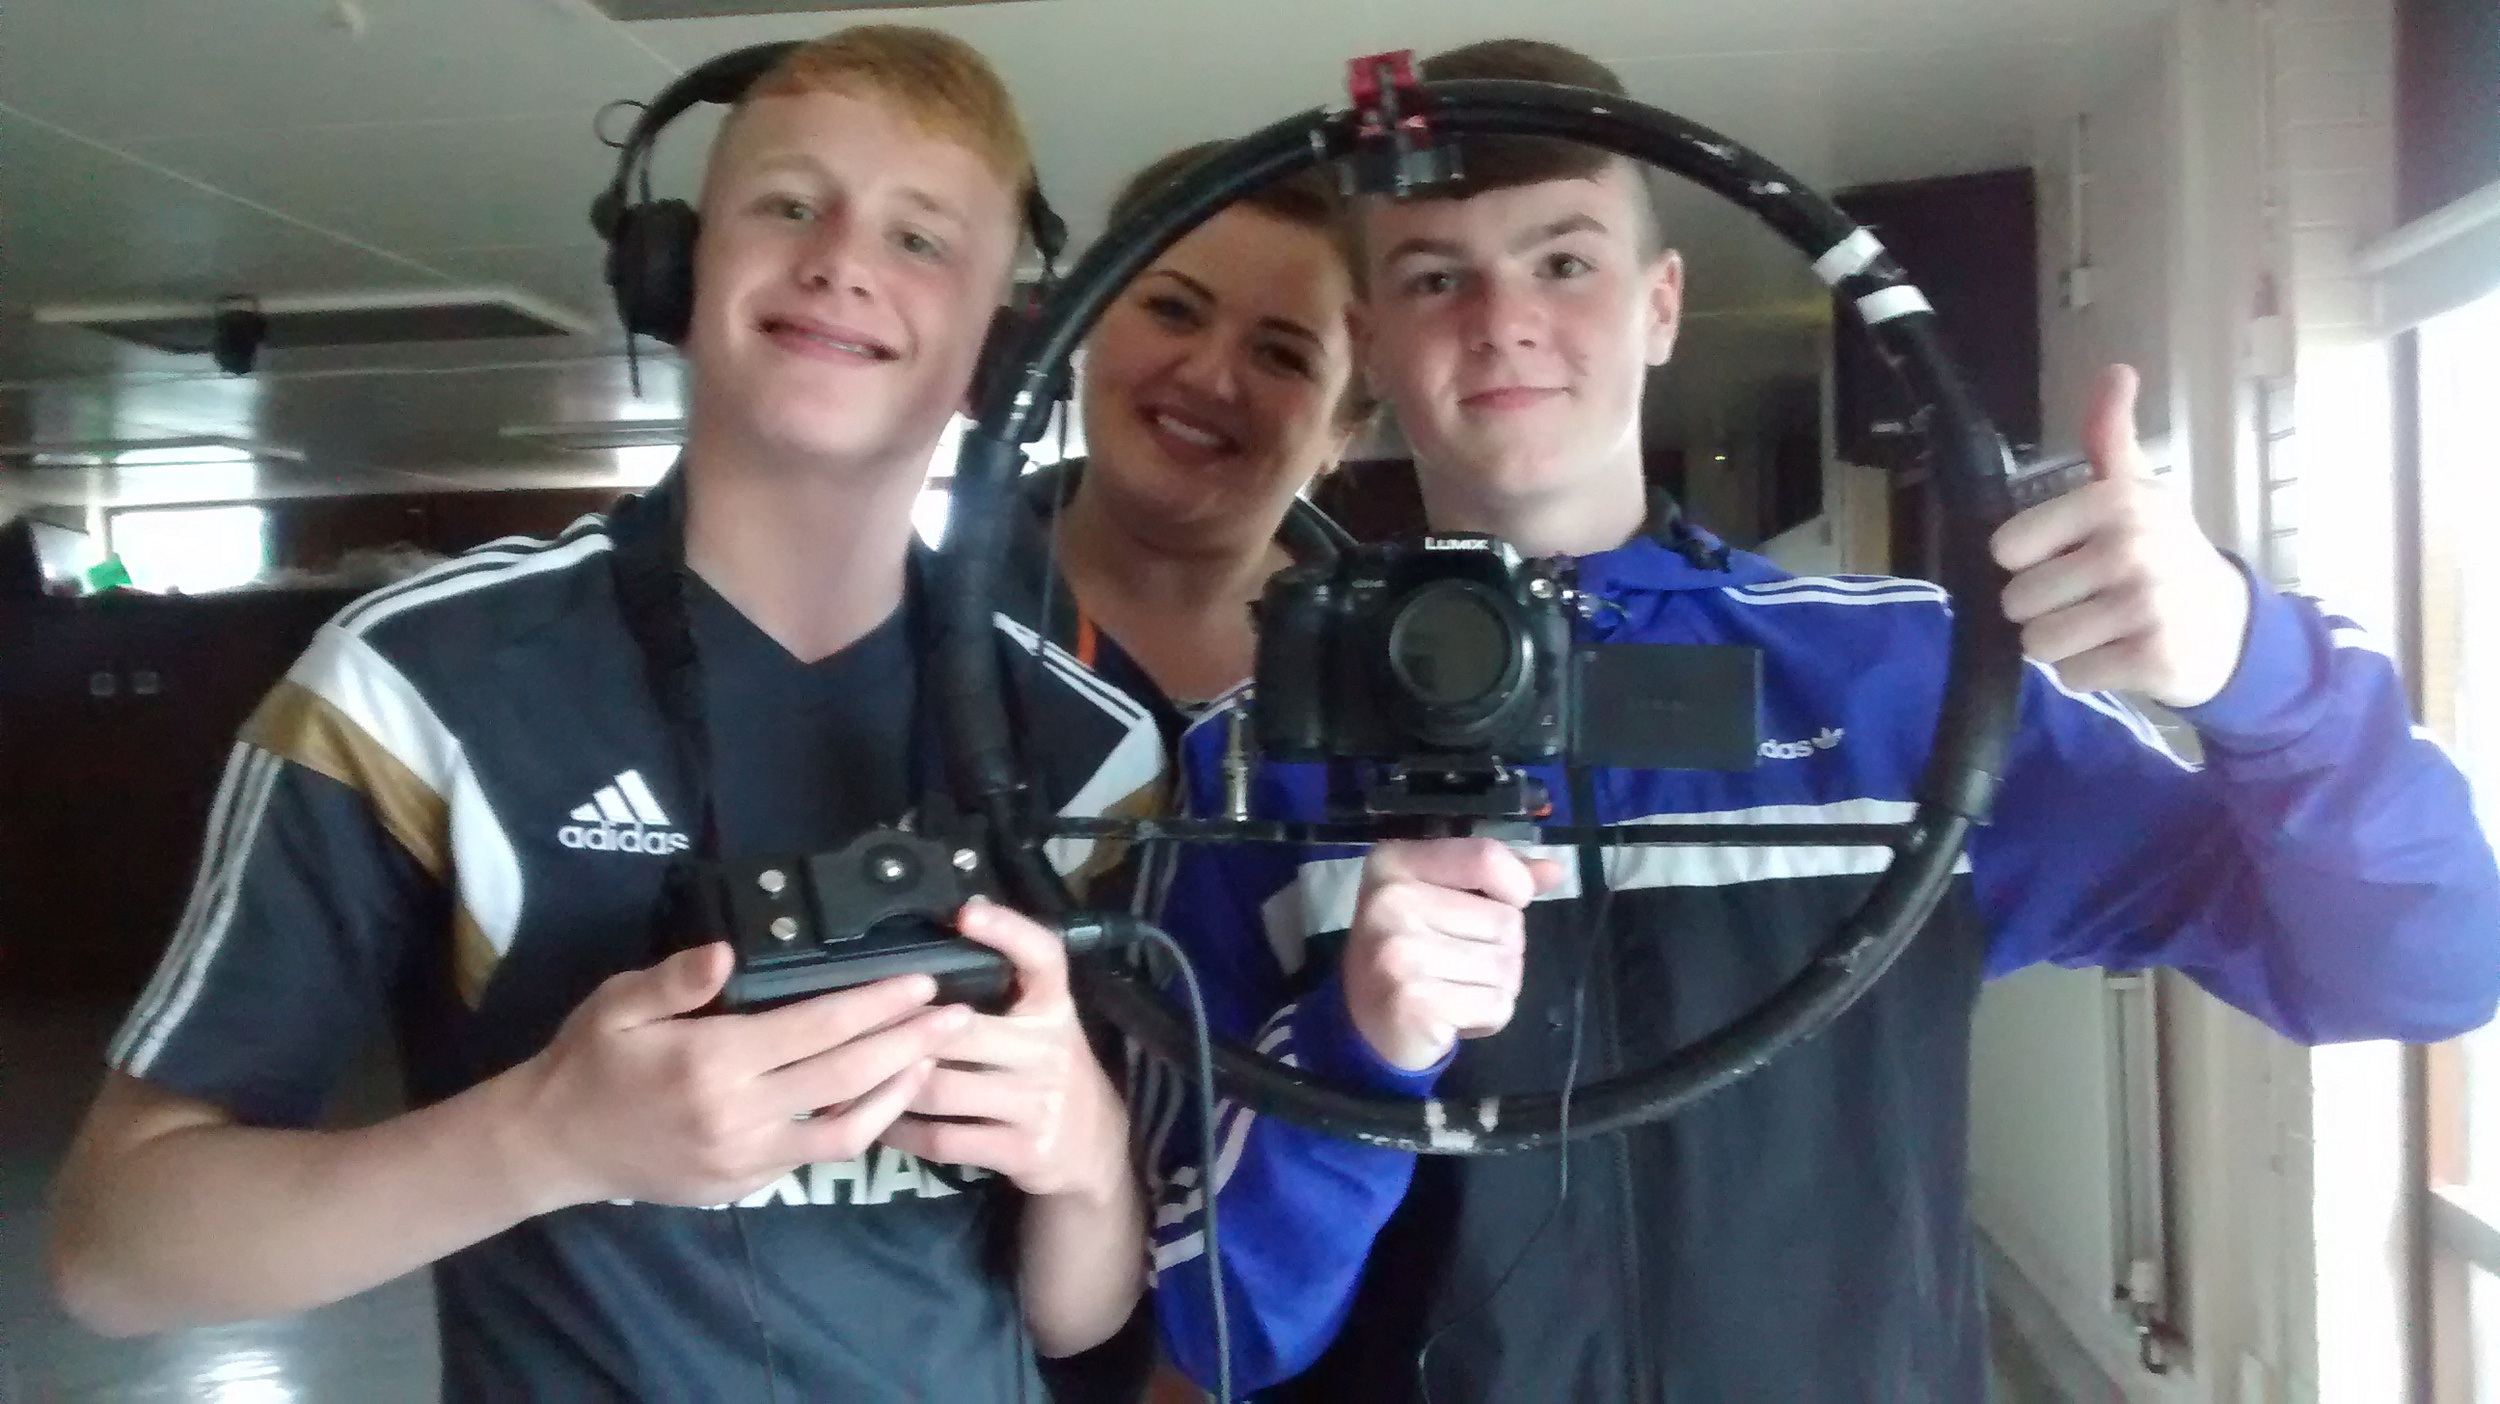 Video production project